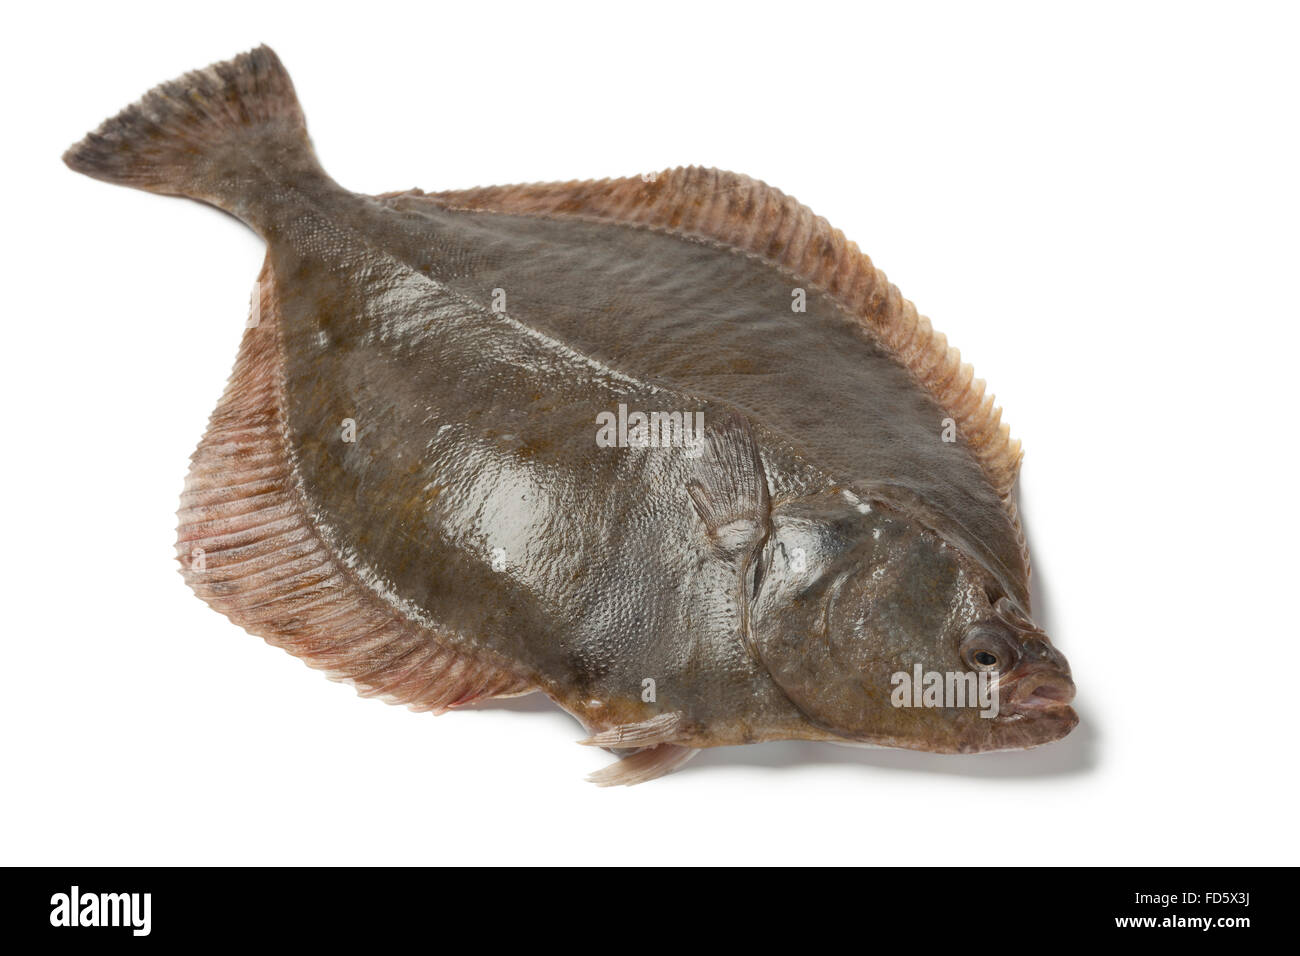 How to cut flounder